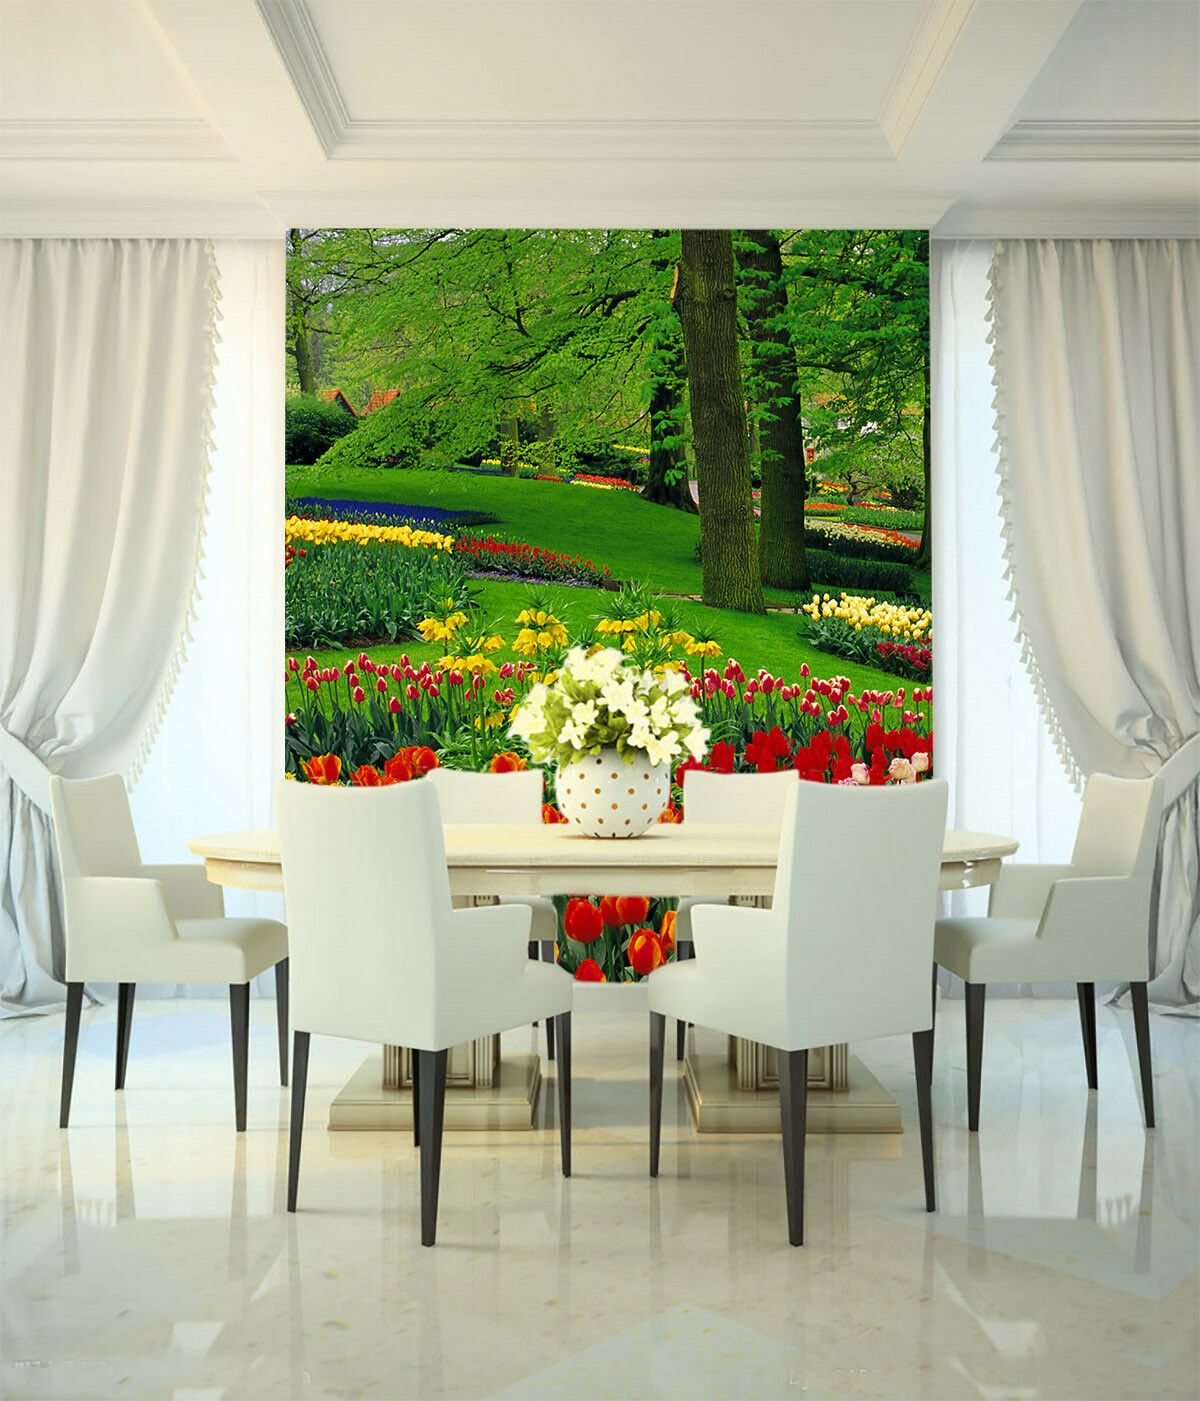 3D Flower Park 610 Wallpaper Murals Wall Print Wall Mural AJ WALLPAPER UK Lemon